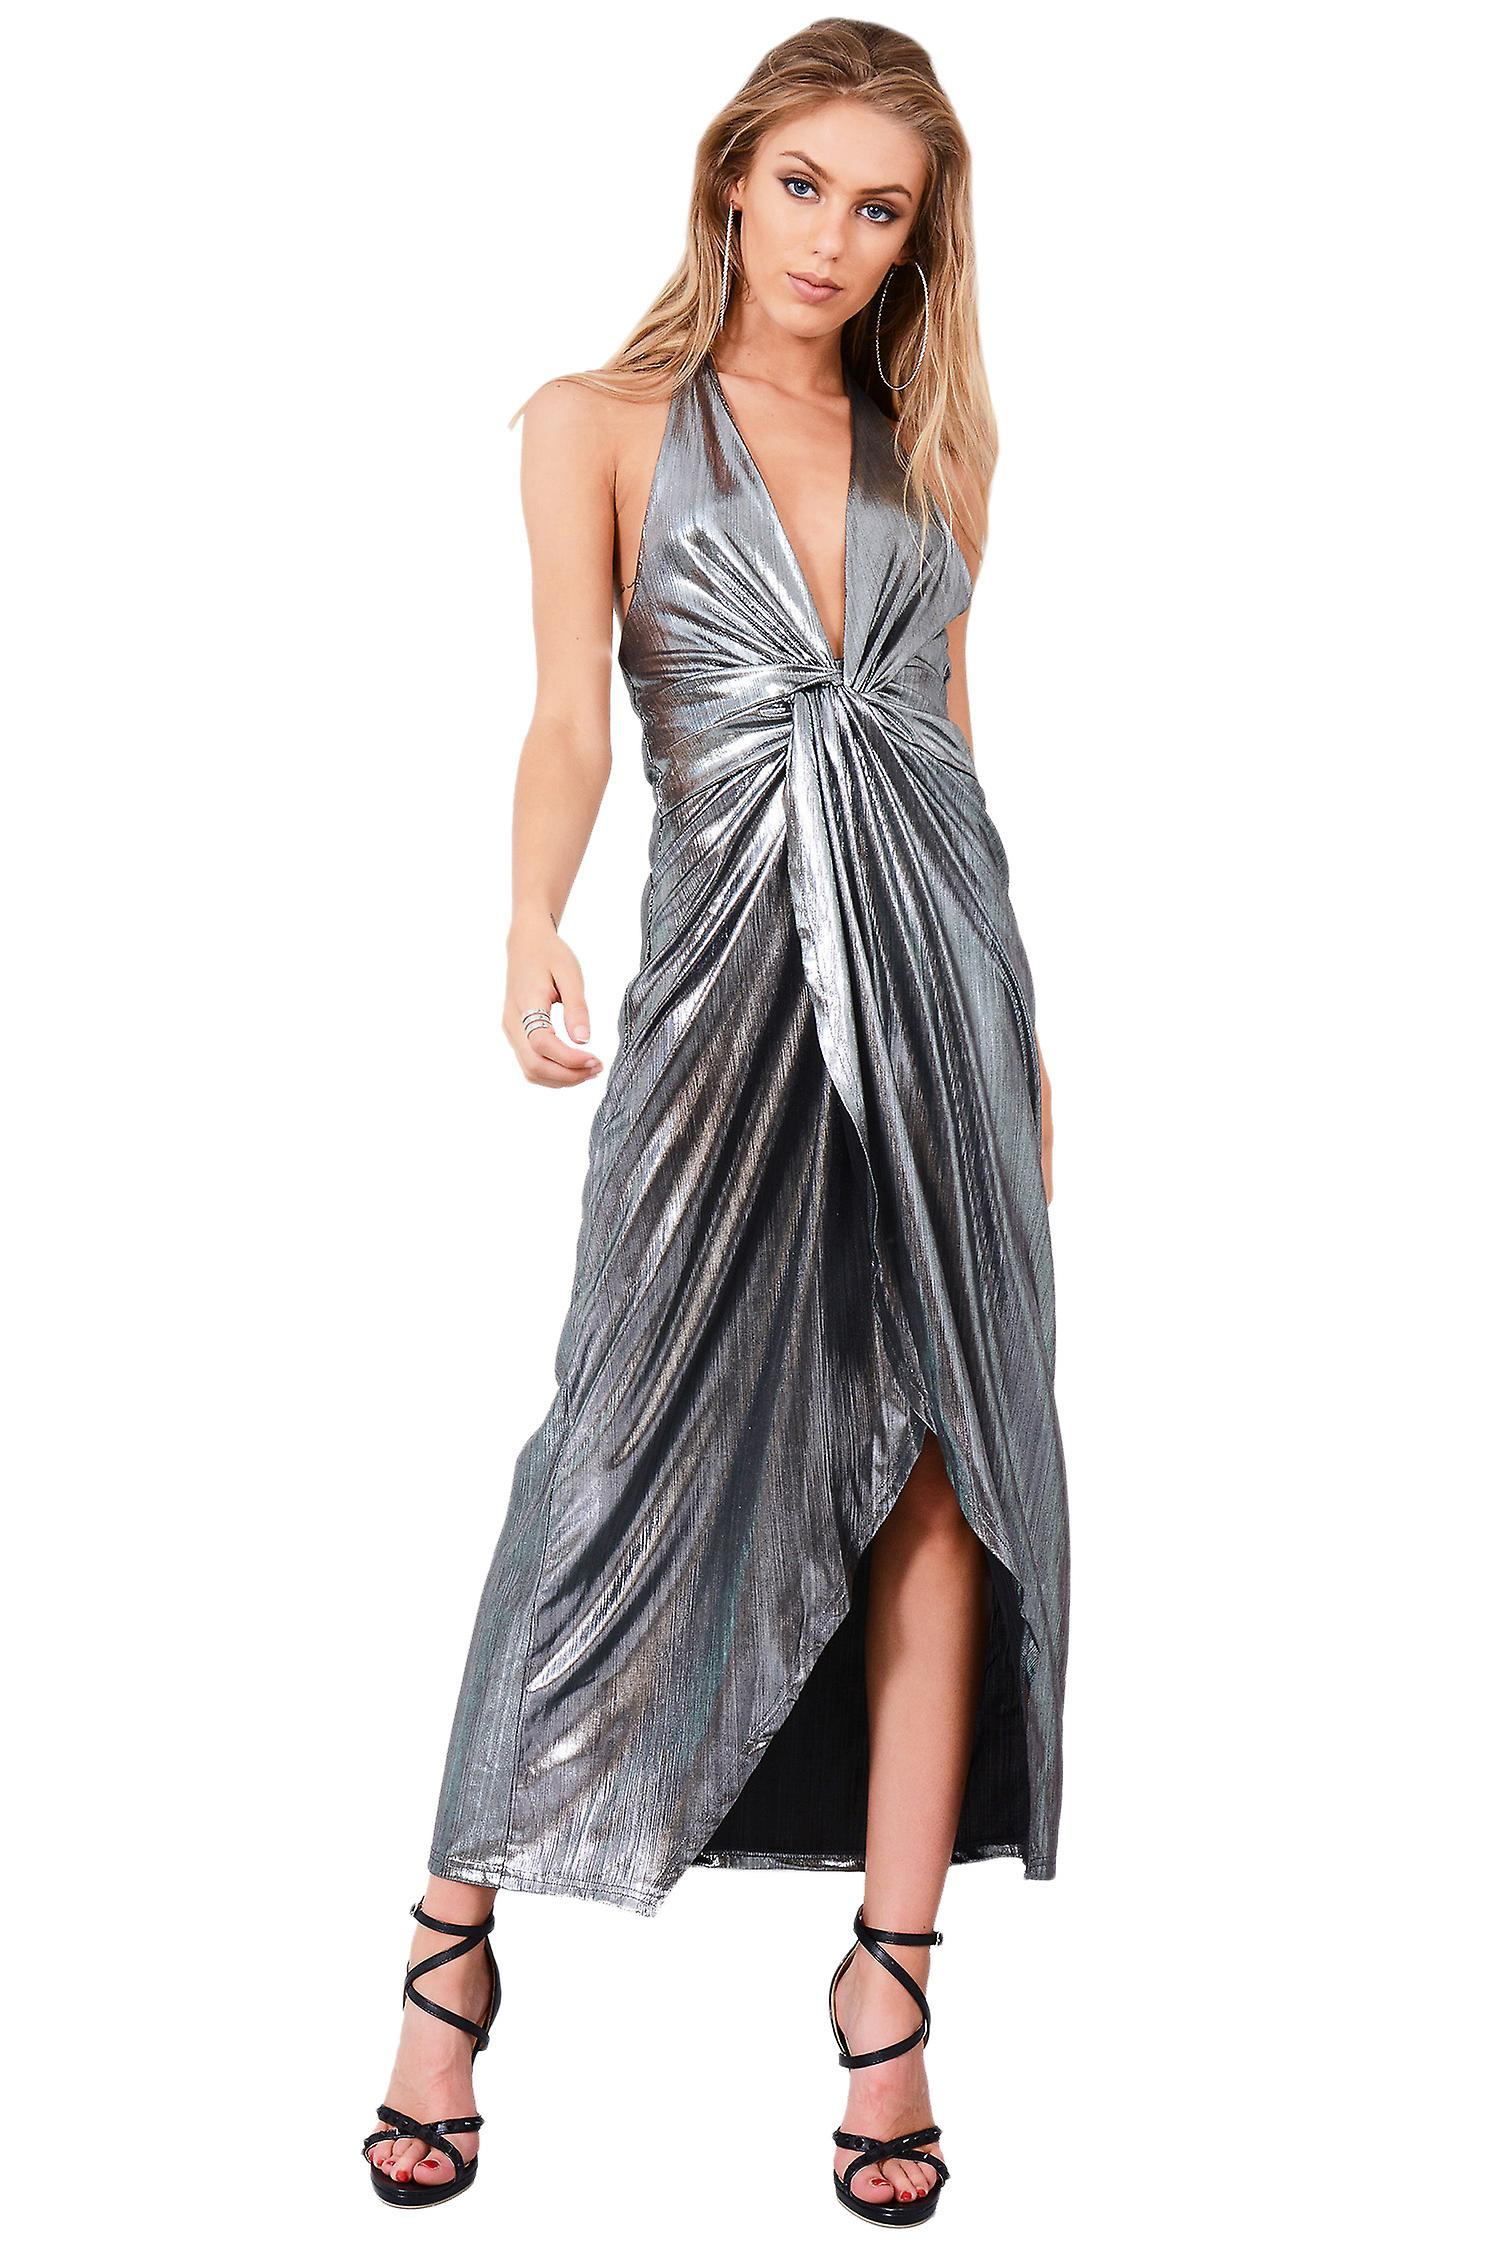 LMS Silver Metallic Halter Neck Maxi Dress With Twisted Knot Front